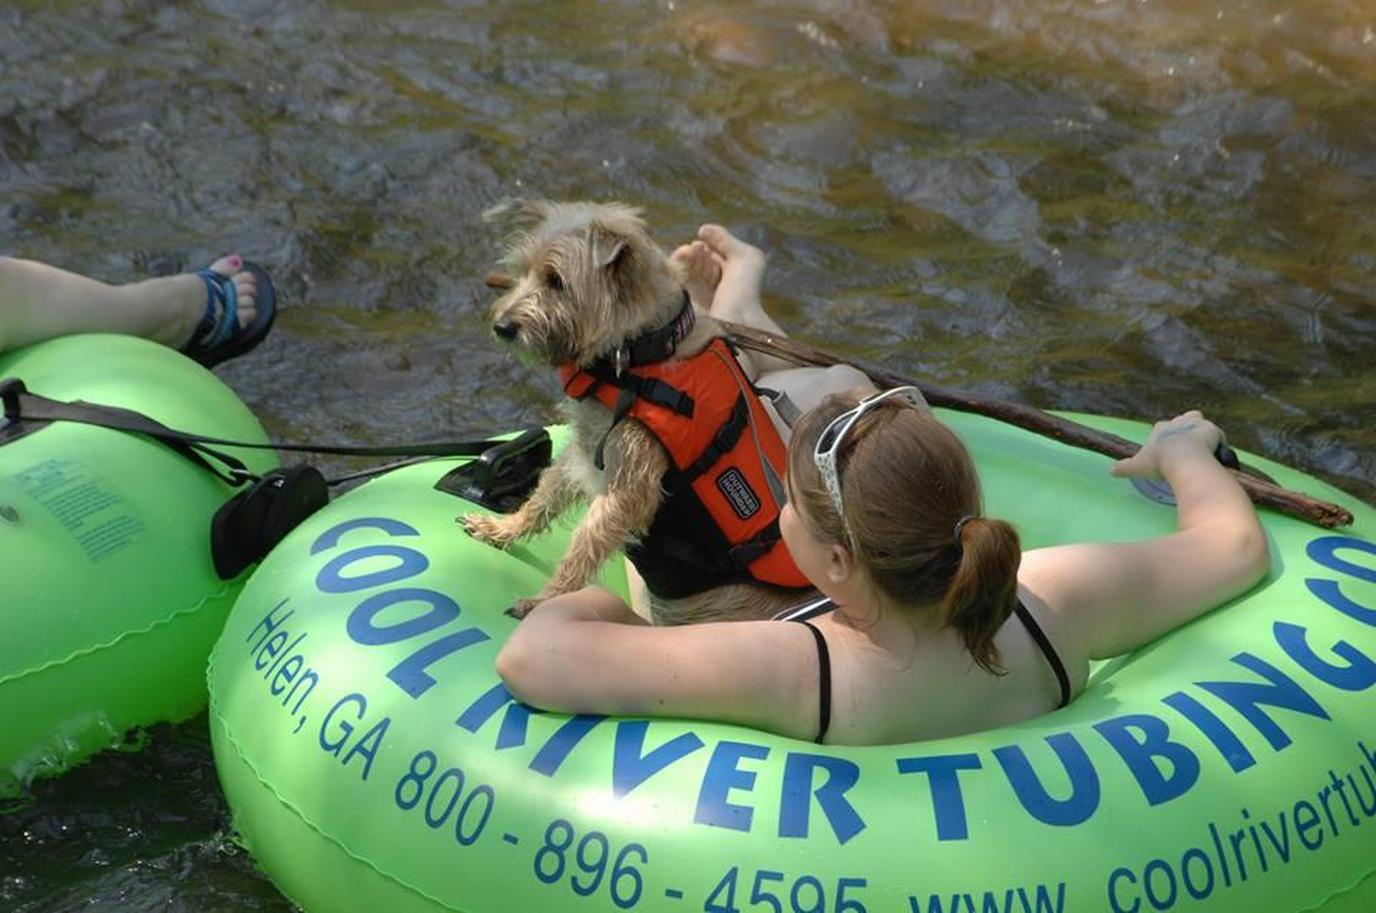 8 Great American Tubing Adventures with Fido - Bring Fido